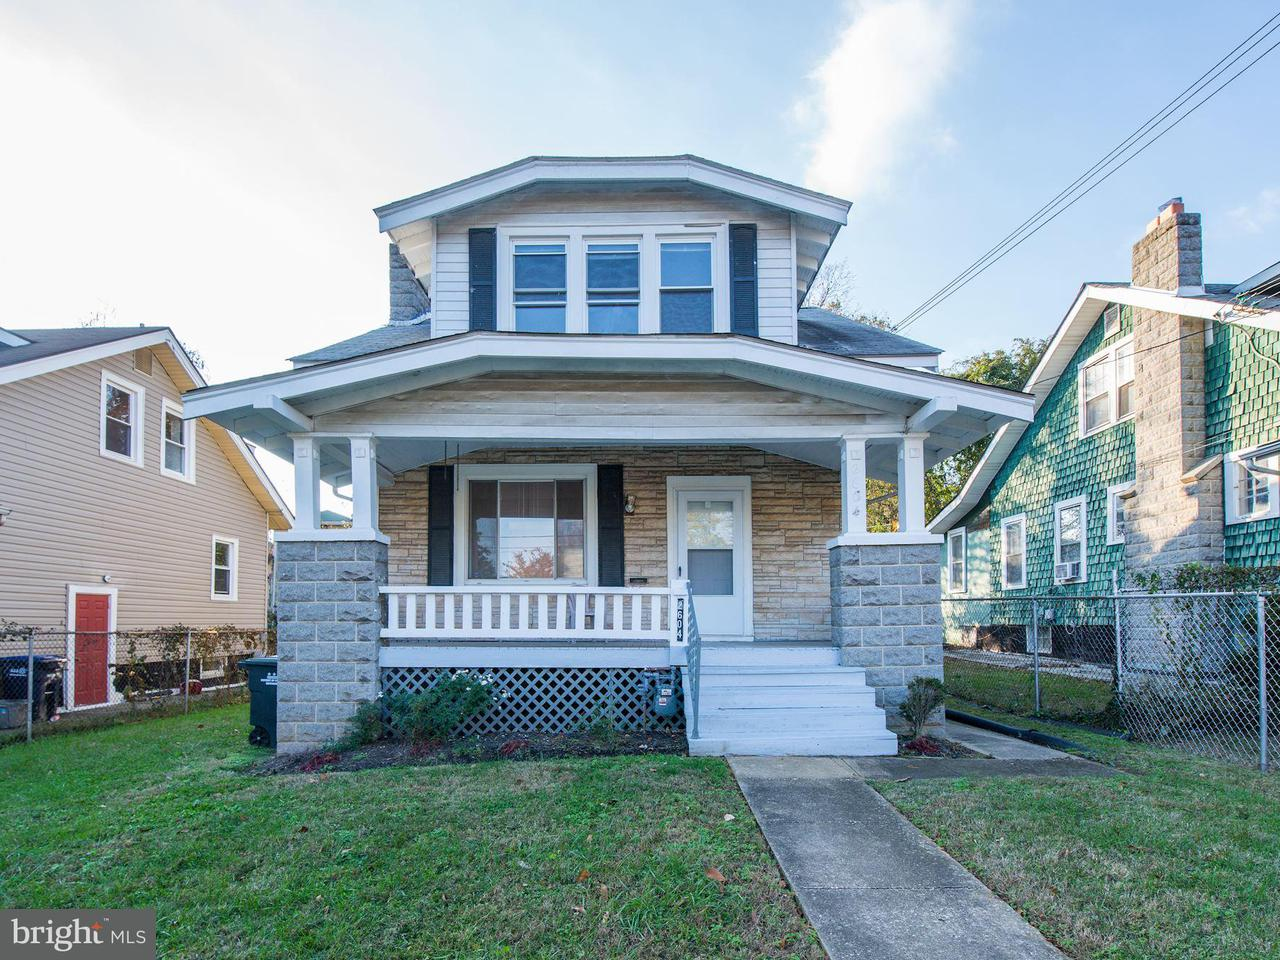 Single Family Home for Sale at 2604 24TH ST NE 2604 24TH ST NE Washington, District Of Columbia 20018 United States